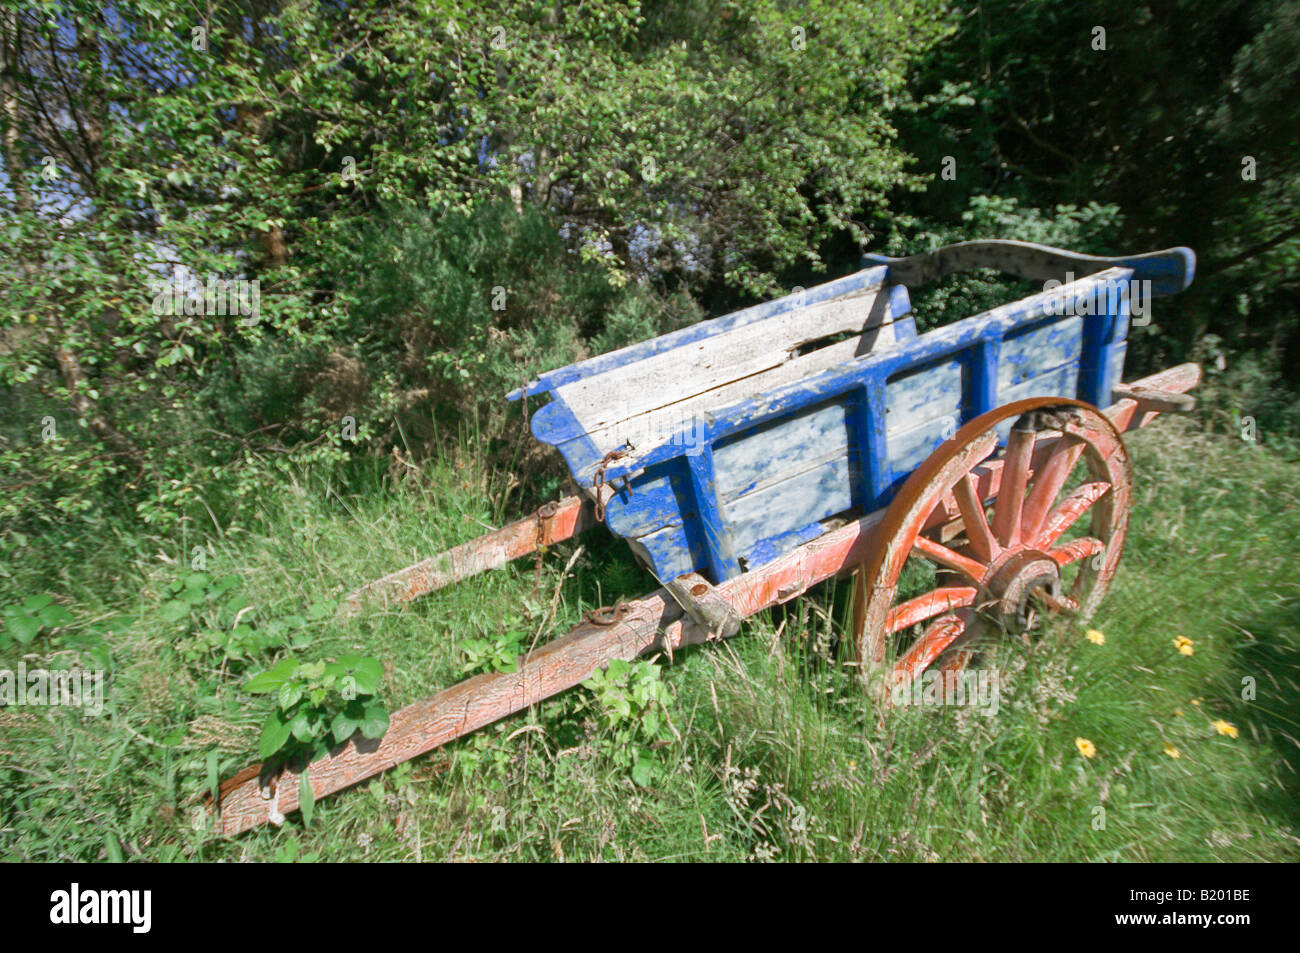 Abandoned horse drawn carriage - Stock Image